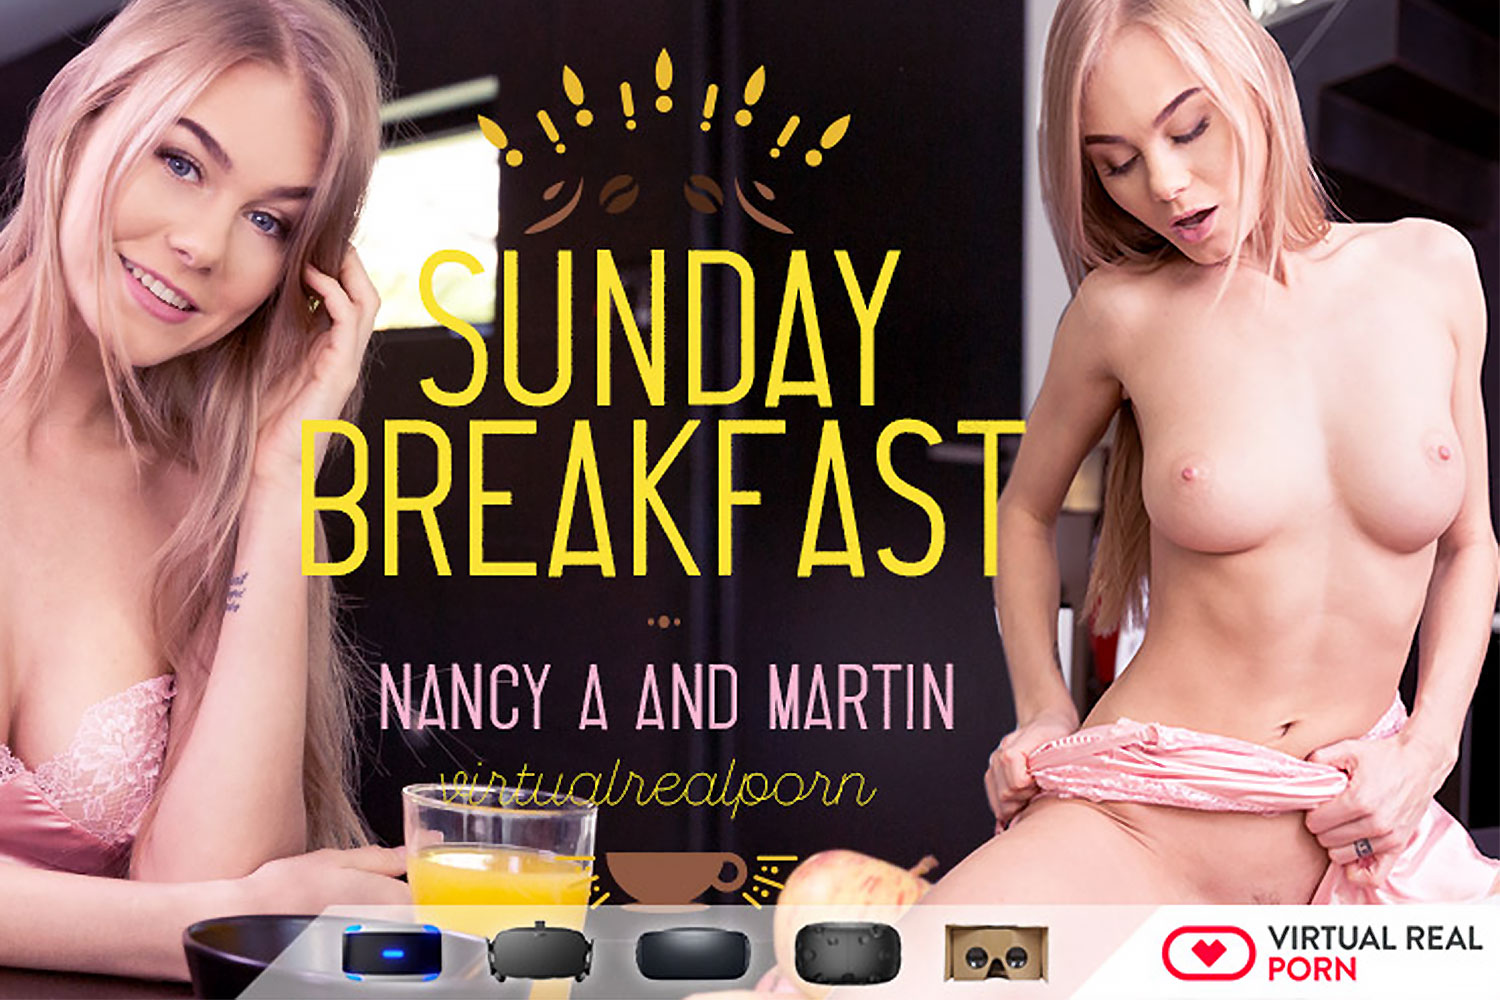 Sunday Breakfast VR Porn Video